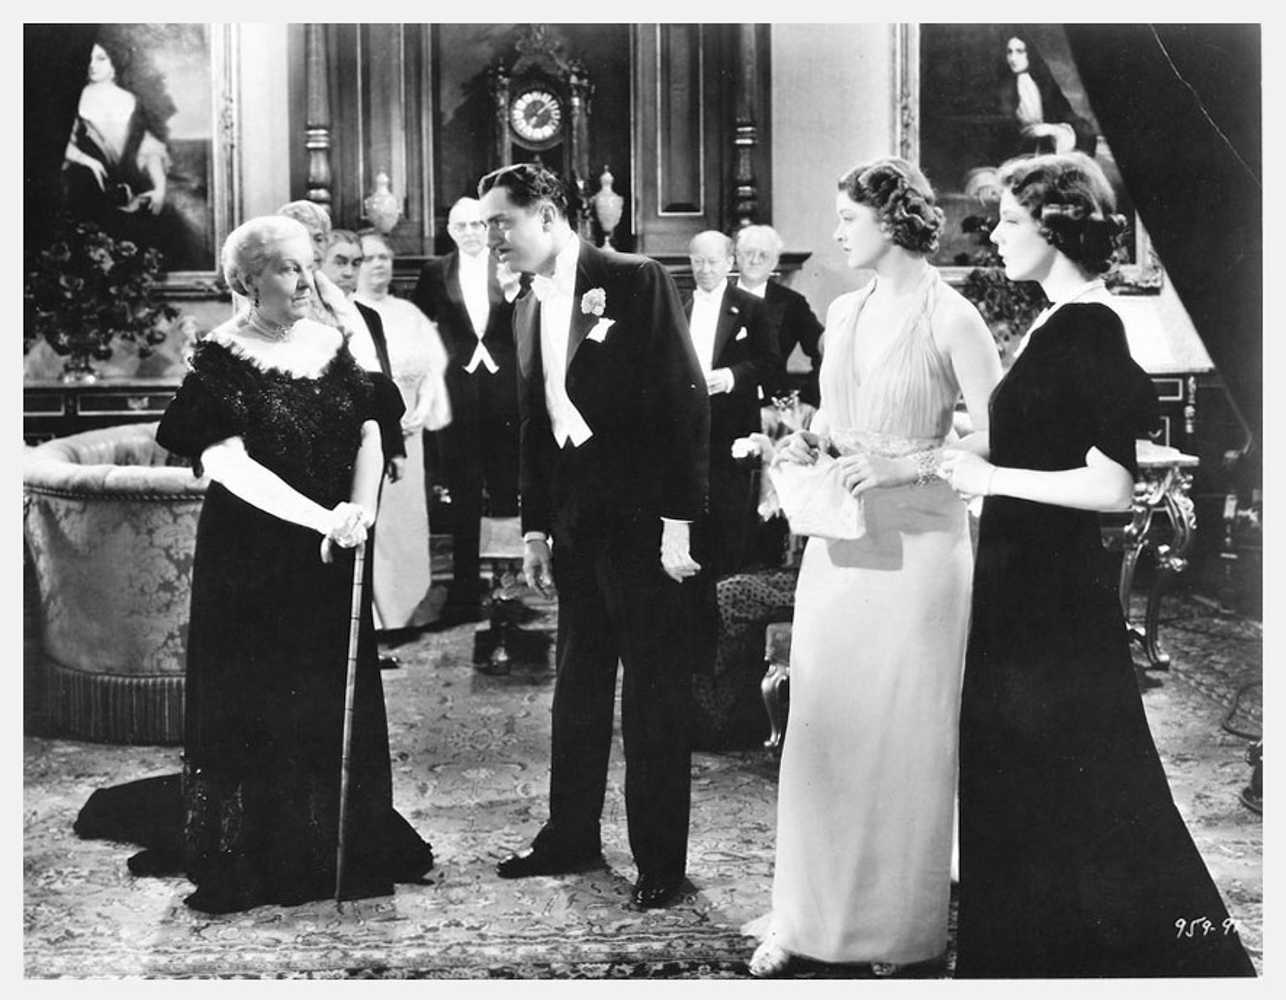 after the thin man 1936 scene still photo 959-91